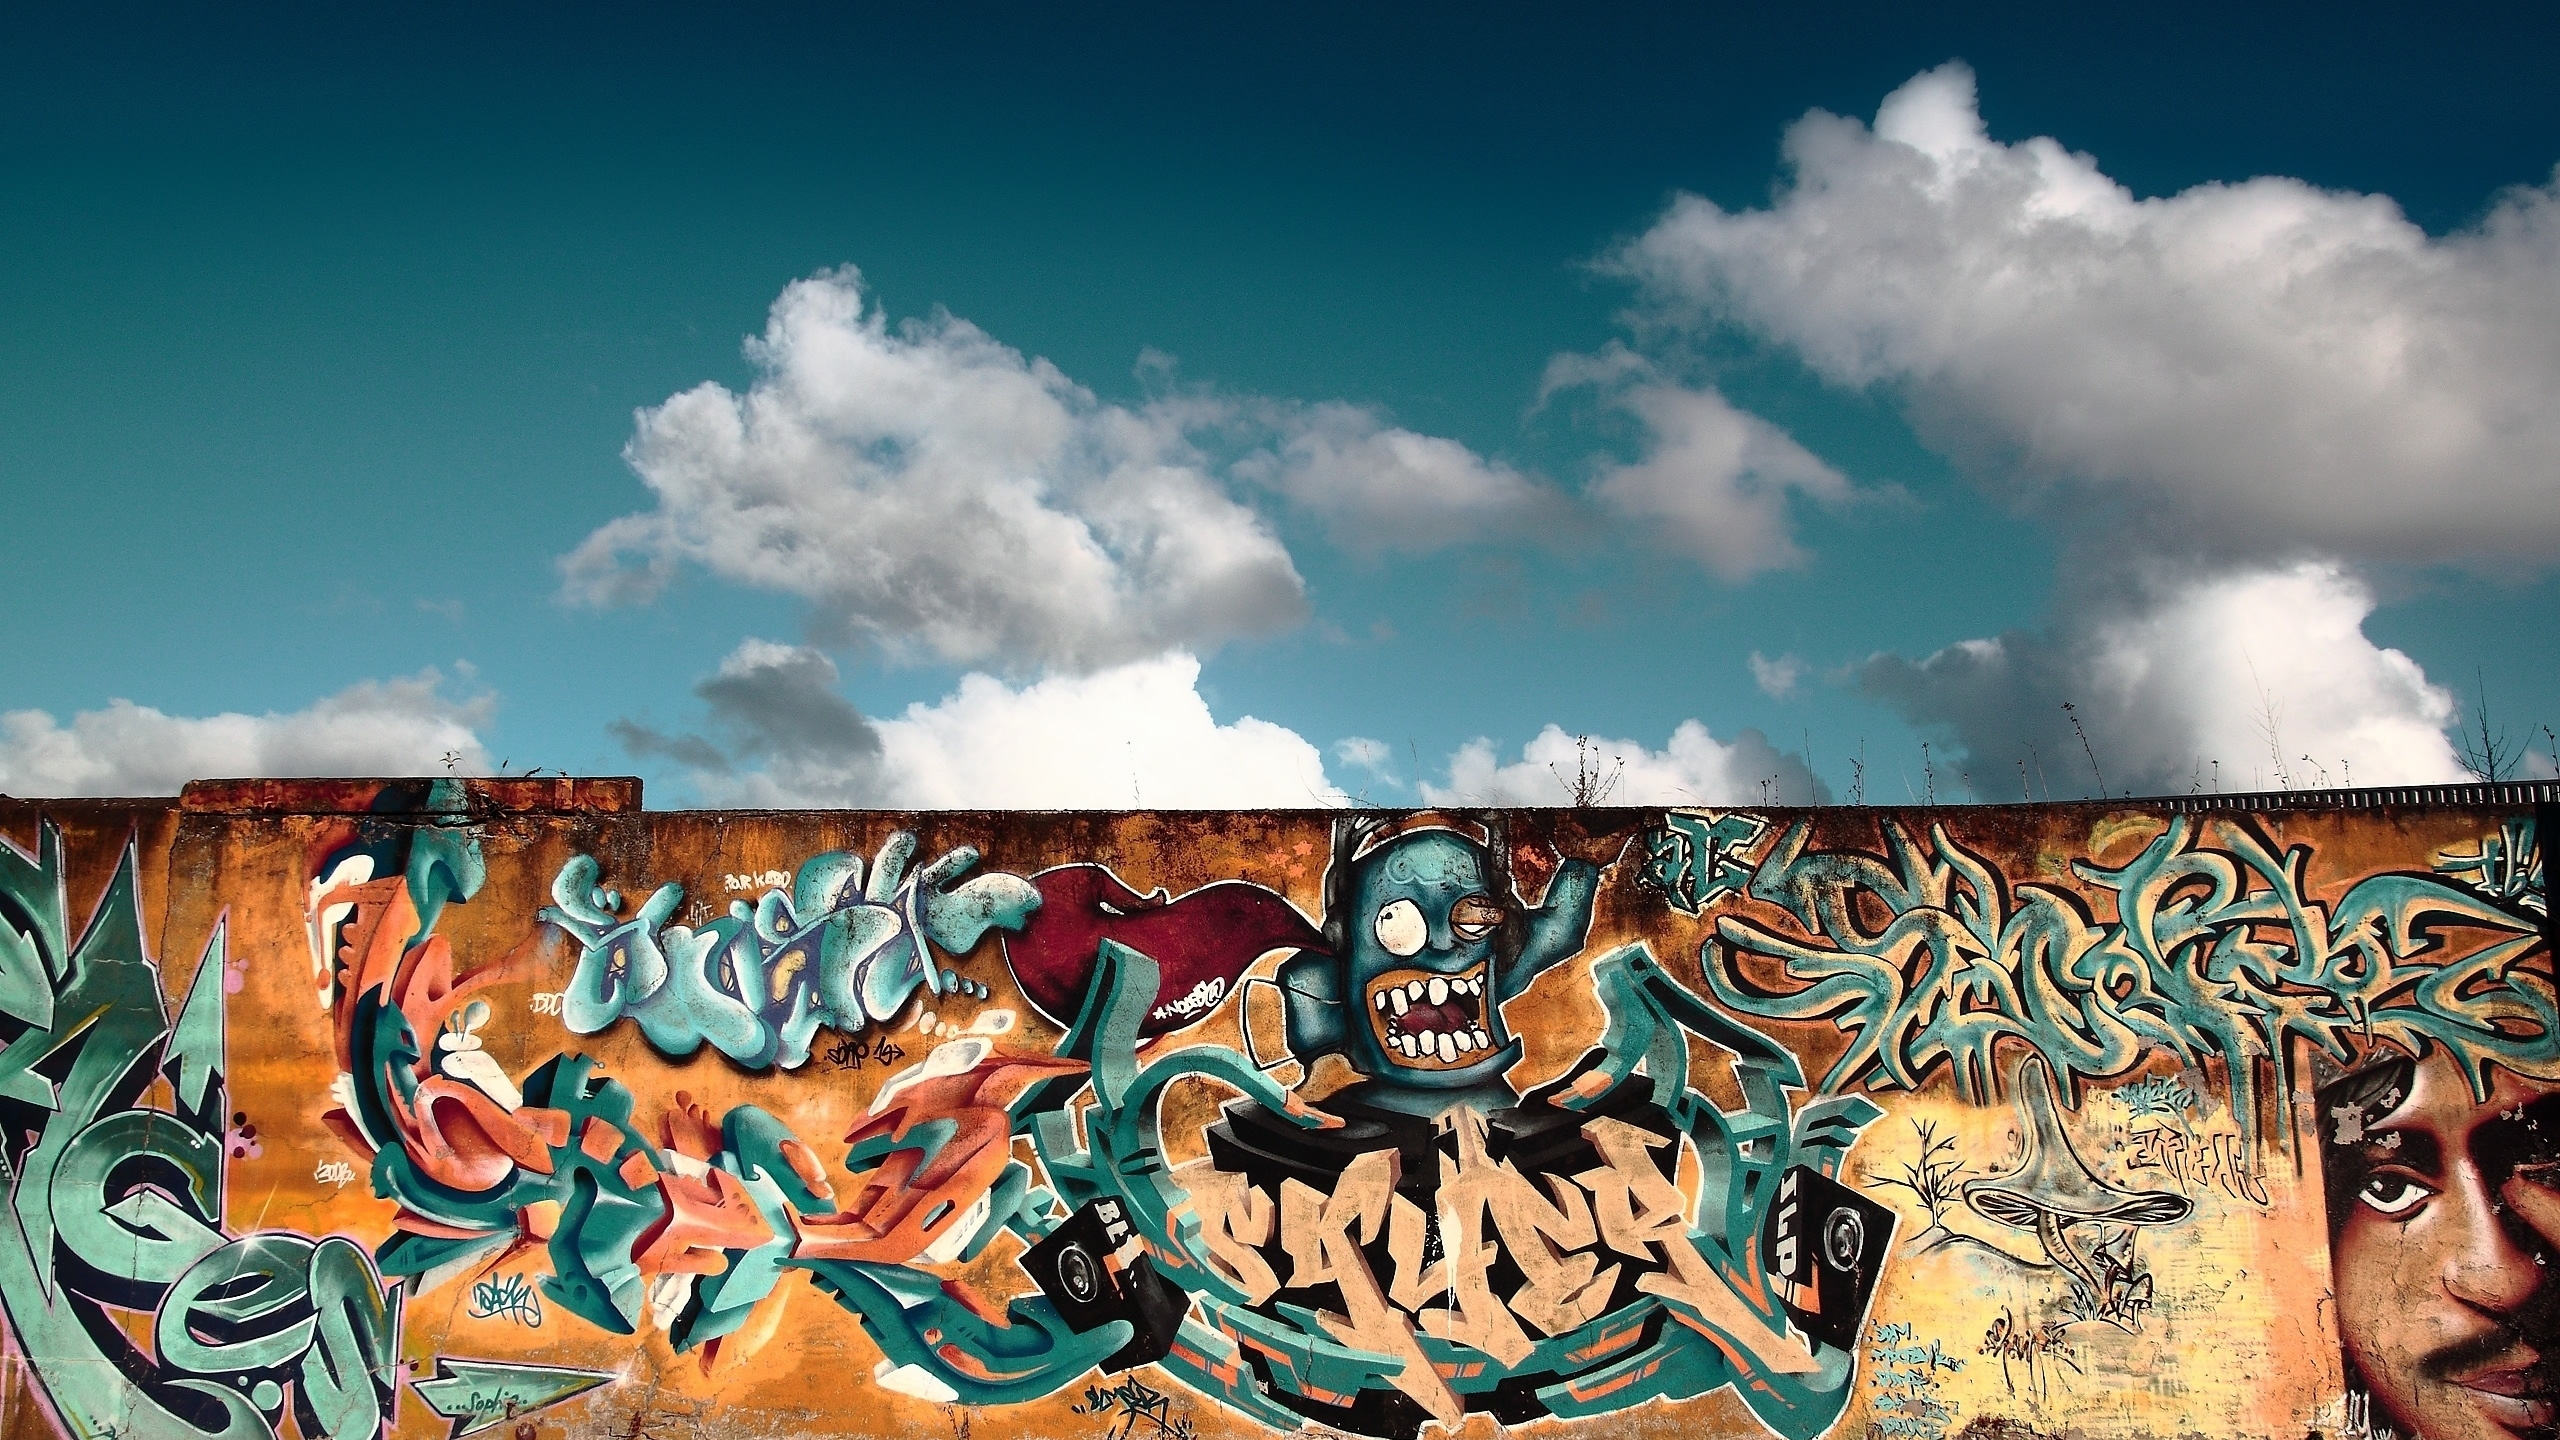 Graffiti Wall Art Mac Wallpaper Download Mac Wallpapers 2560x1440